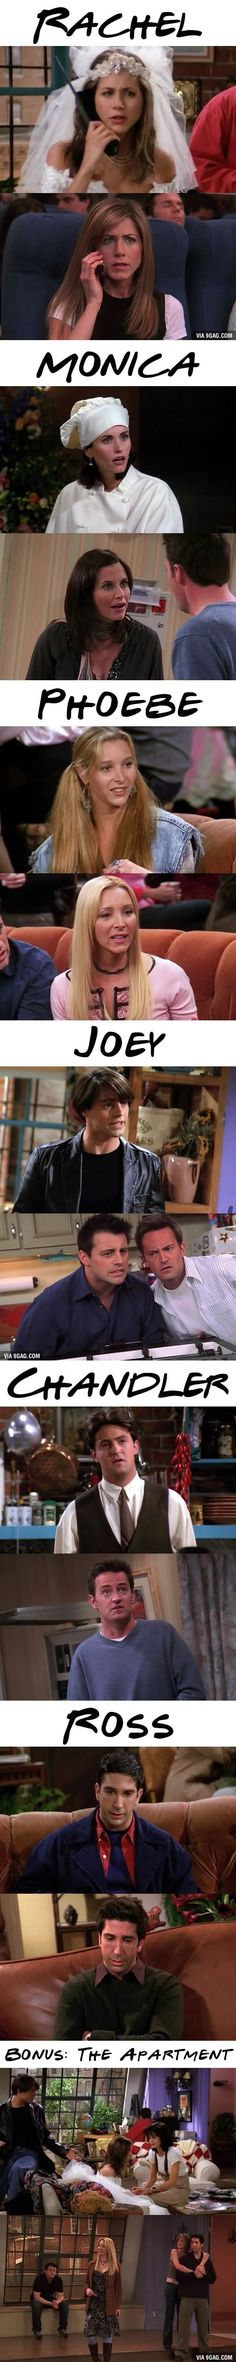 "The Cast Of ""Friends"" On The First Episode Vs. The Last Episode Friends is the Best Show Ever. Friends made us laugh, it made us cry. It thought all of us so much about friendship and friends. Friends Tv Show, Friends 1994, The Cast Of Friends, Serie Friends, Friends Moments, I Love My Friends, Friends Forever, Funny Friends, Friends Season 1"